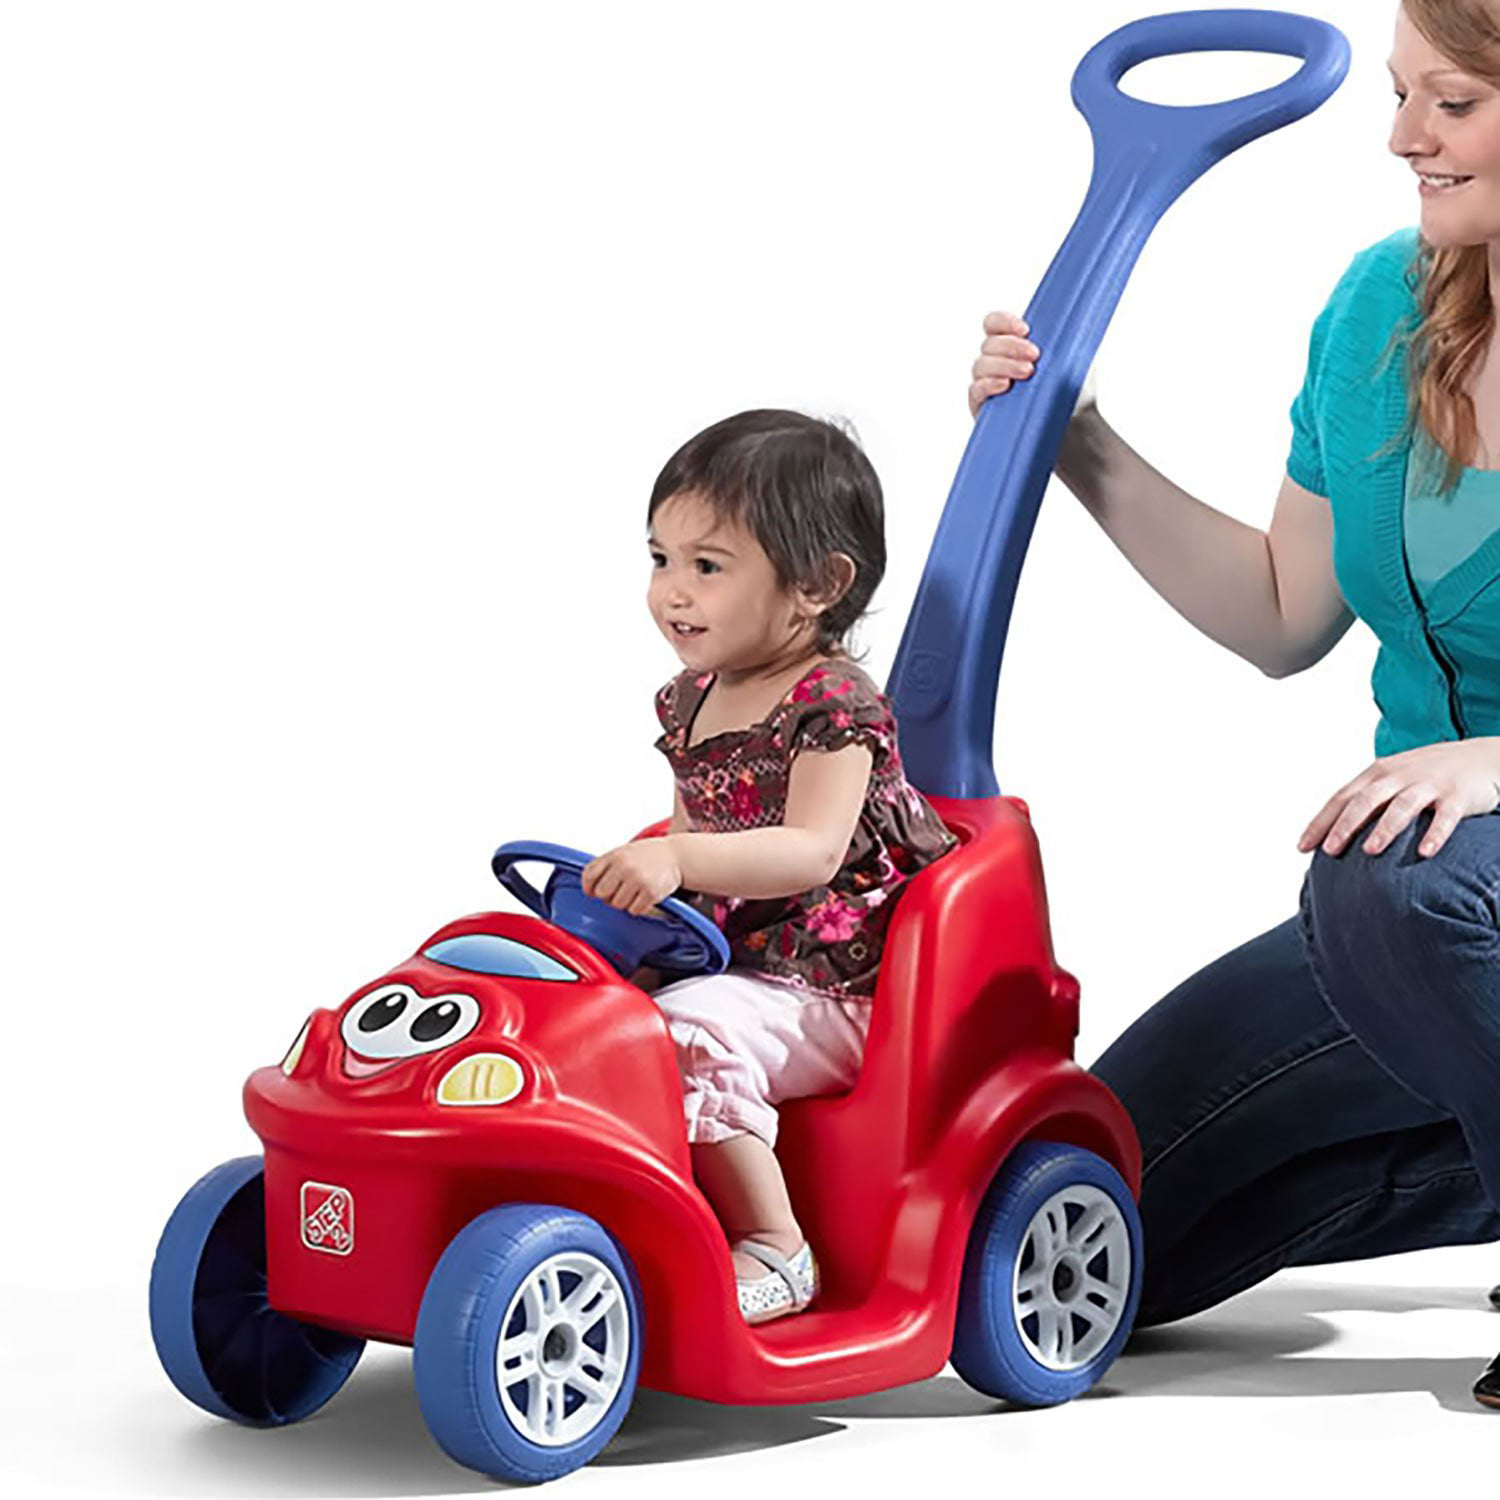 Step2 Easy Steer Toddler Chilren's Push Around Buddy Ride On Push Pull Toy, Red by Step2